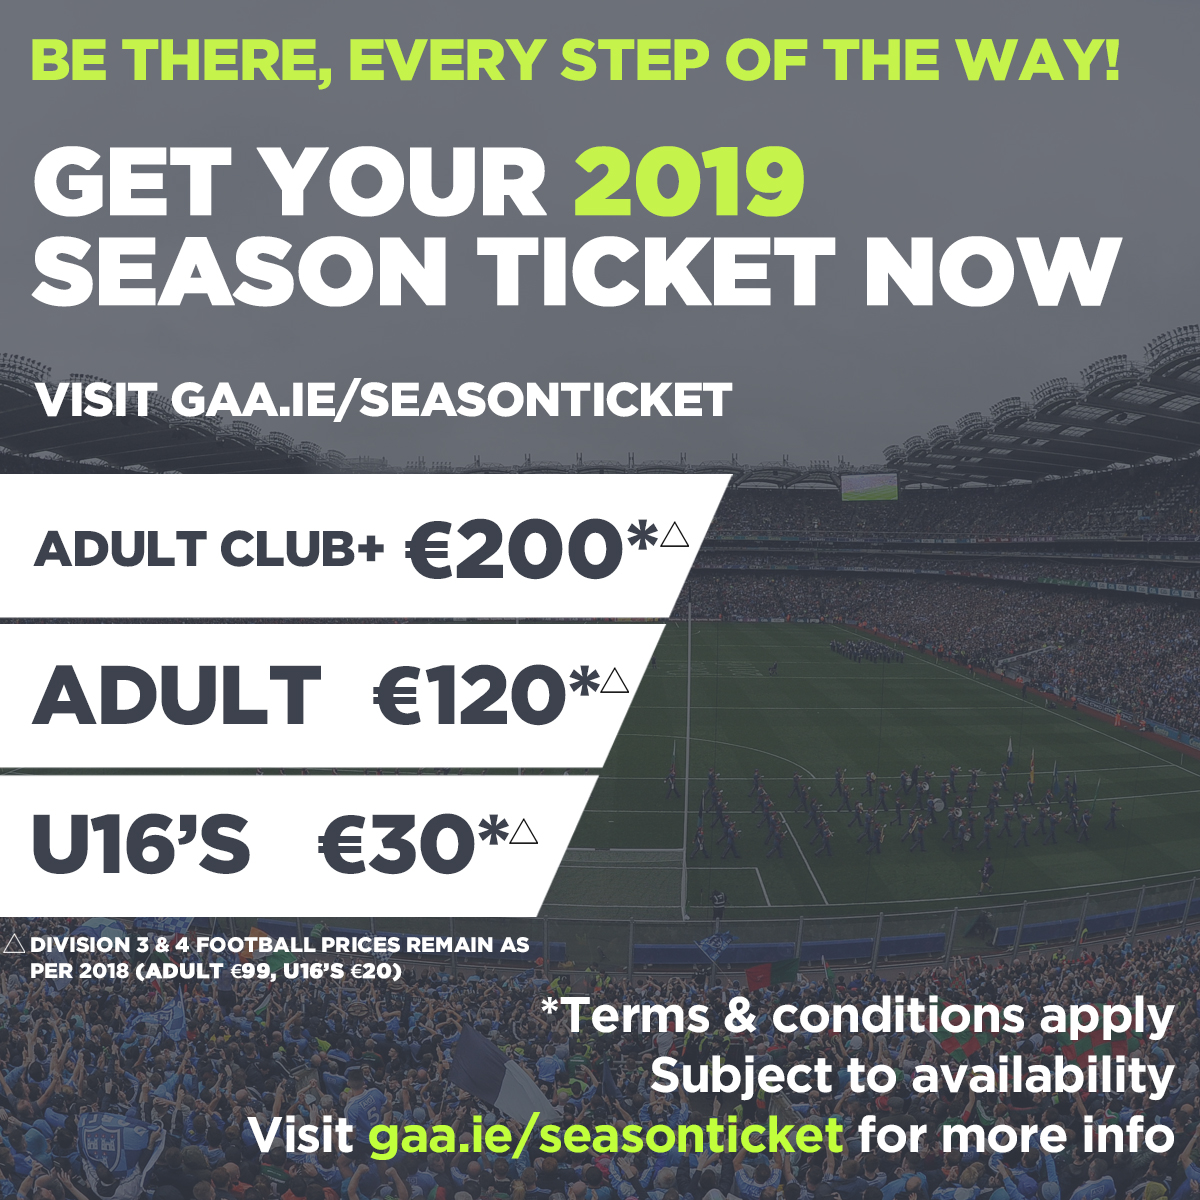 Link to GAA Season Tickets for 2019 now on sale post